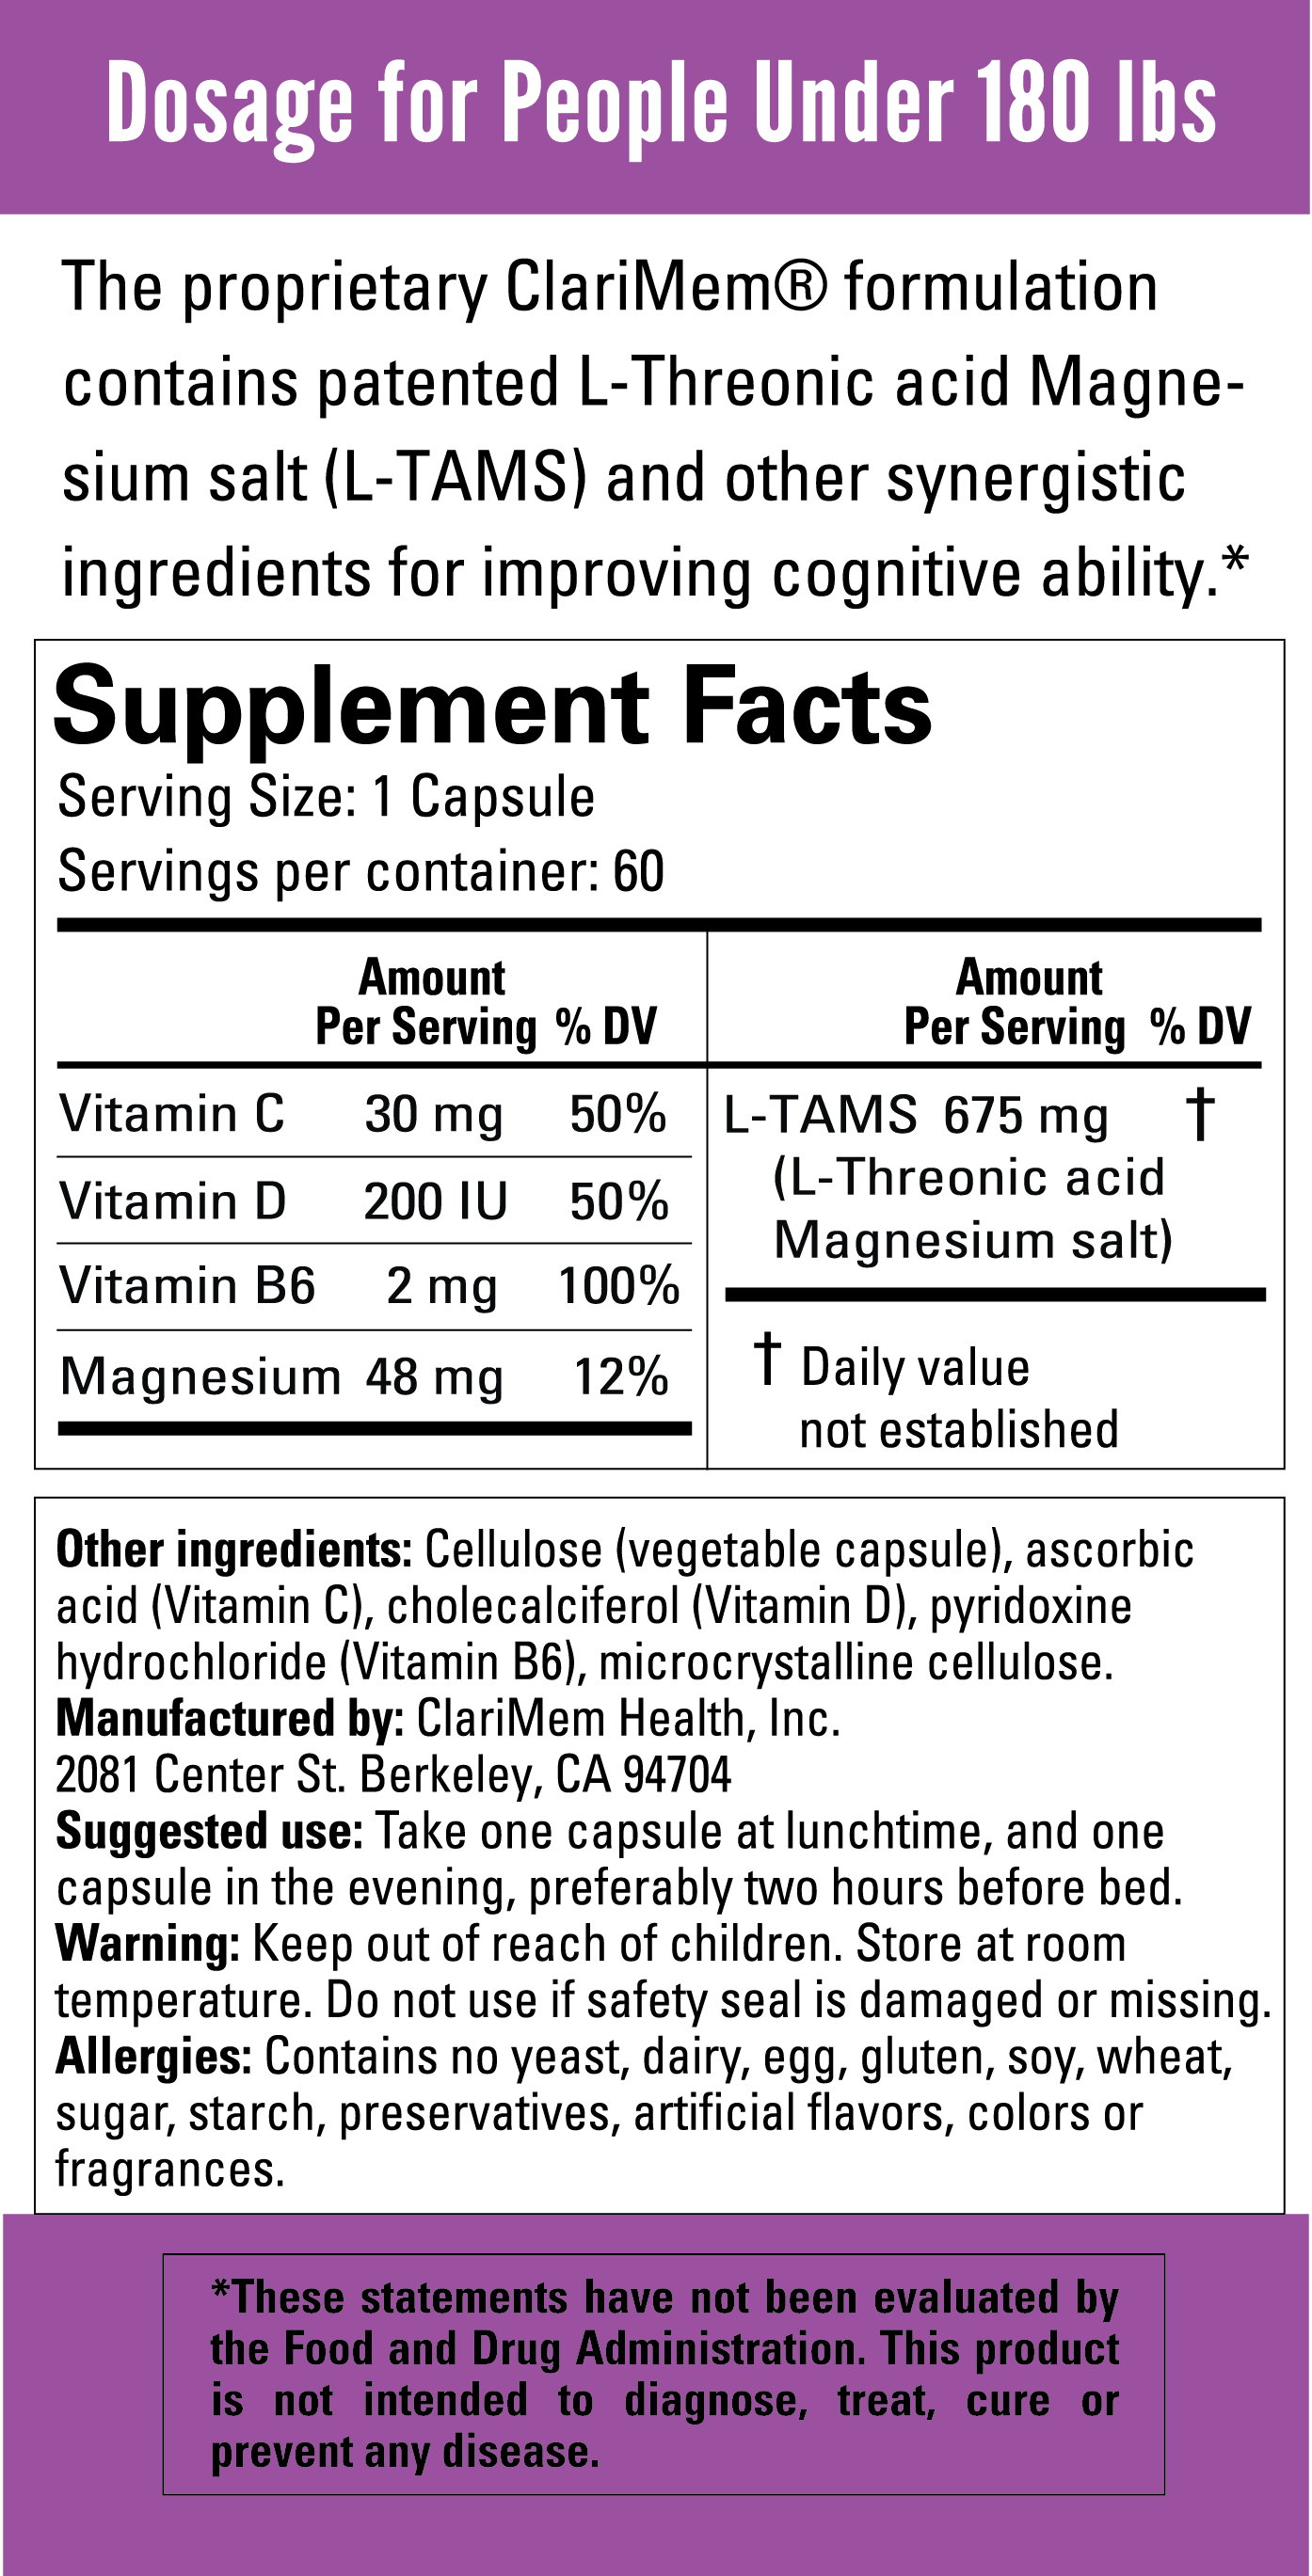 clarimem-box-under-180-supplement-panel-only-.png